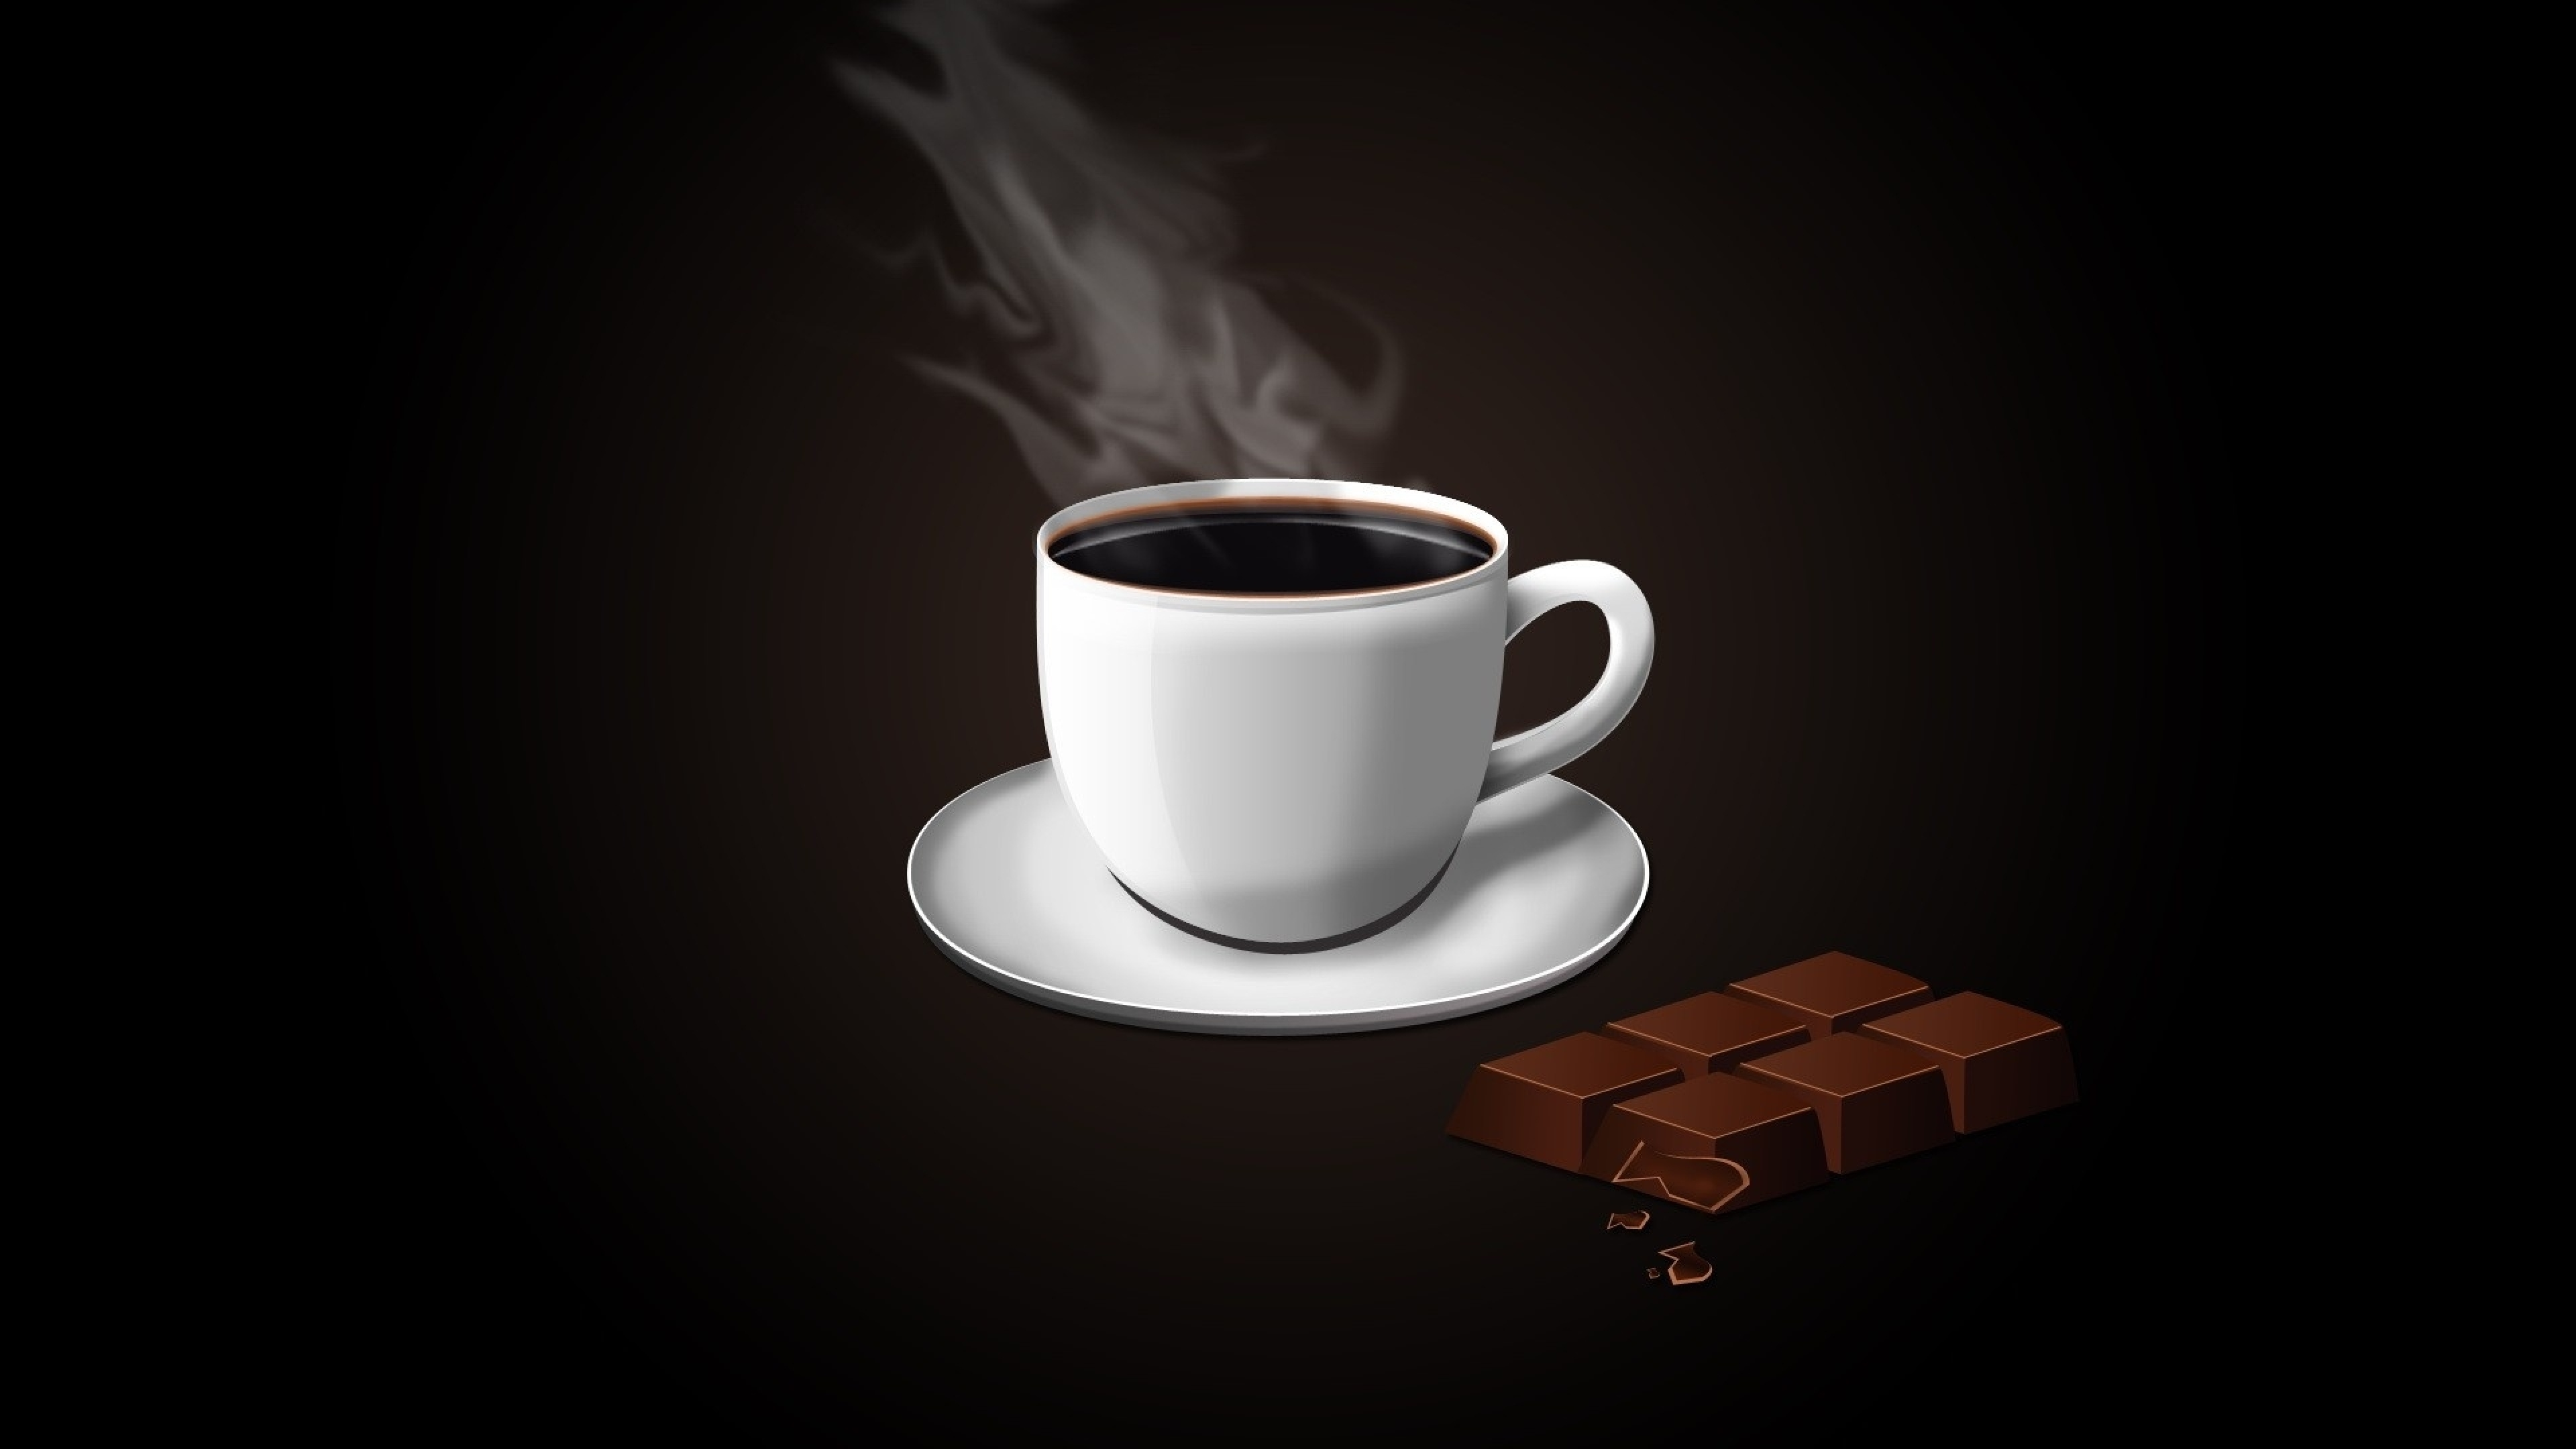 4K Cup Of Coffee Wallpapers High Quality